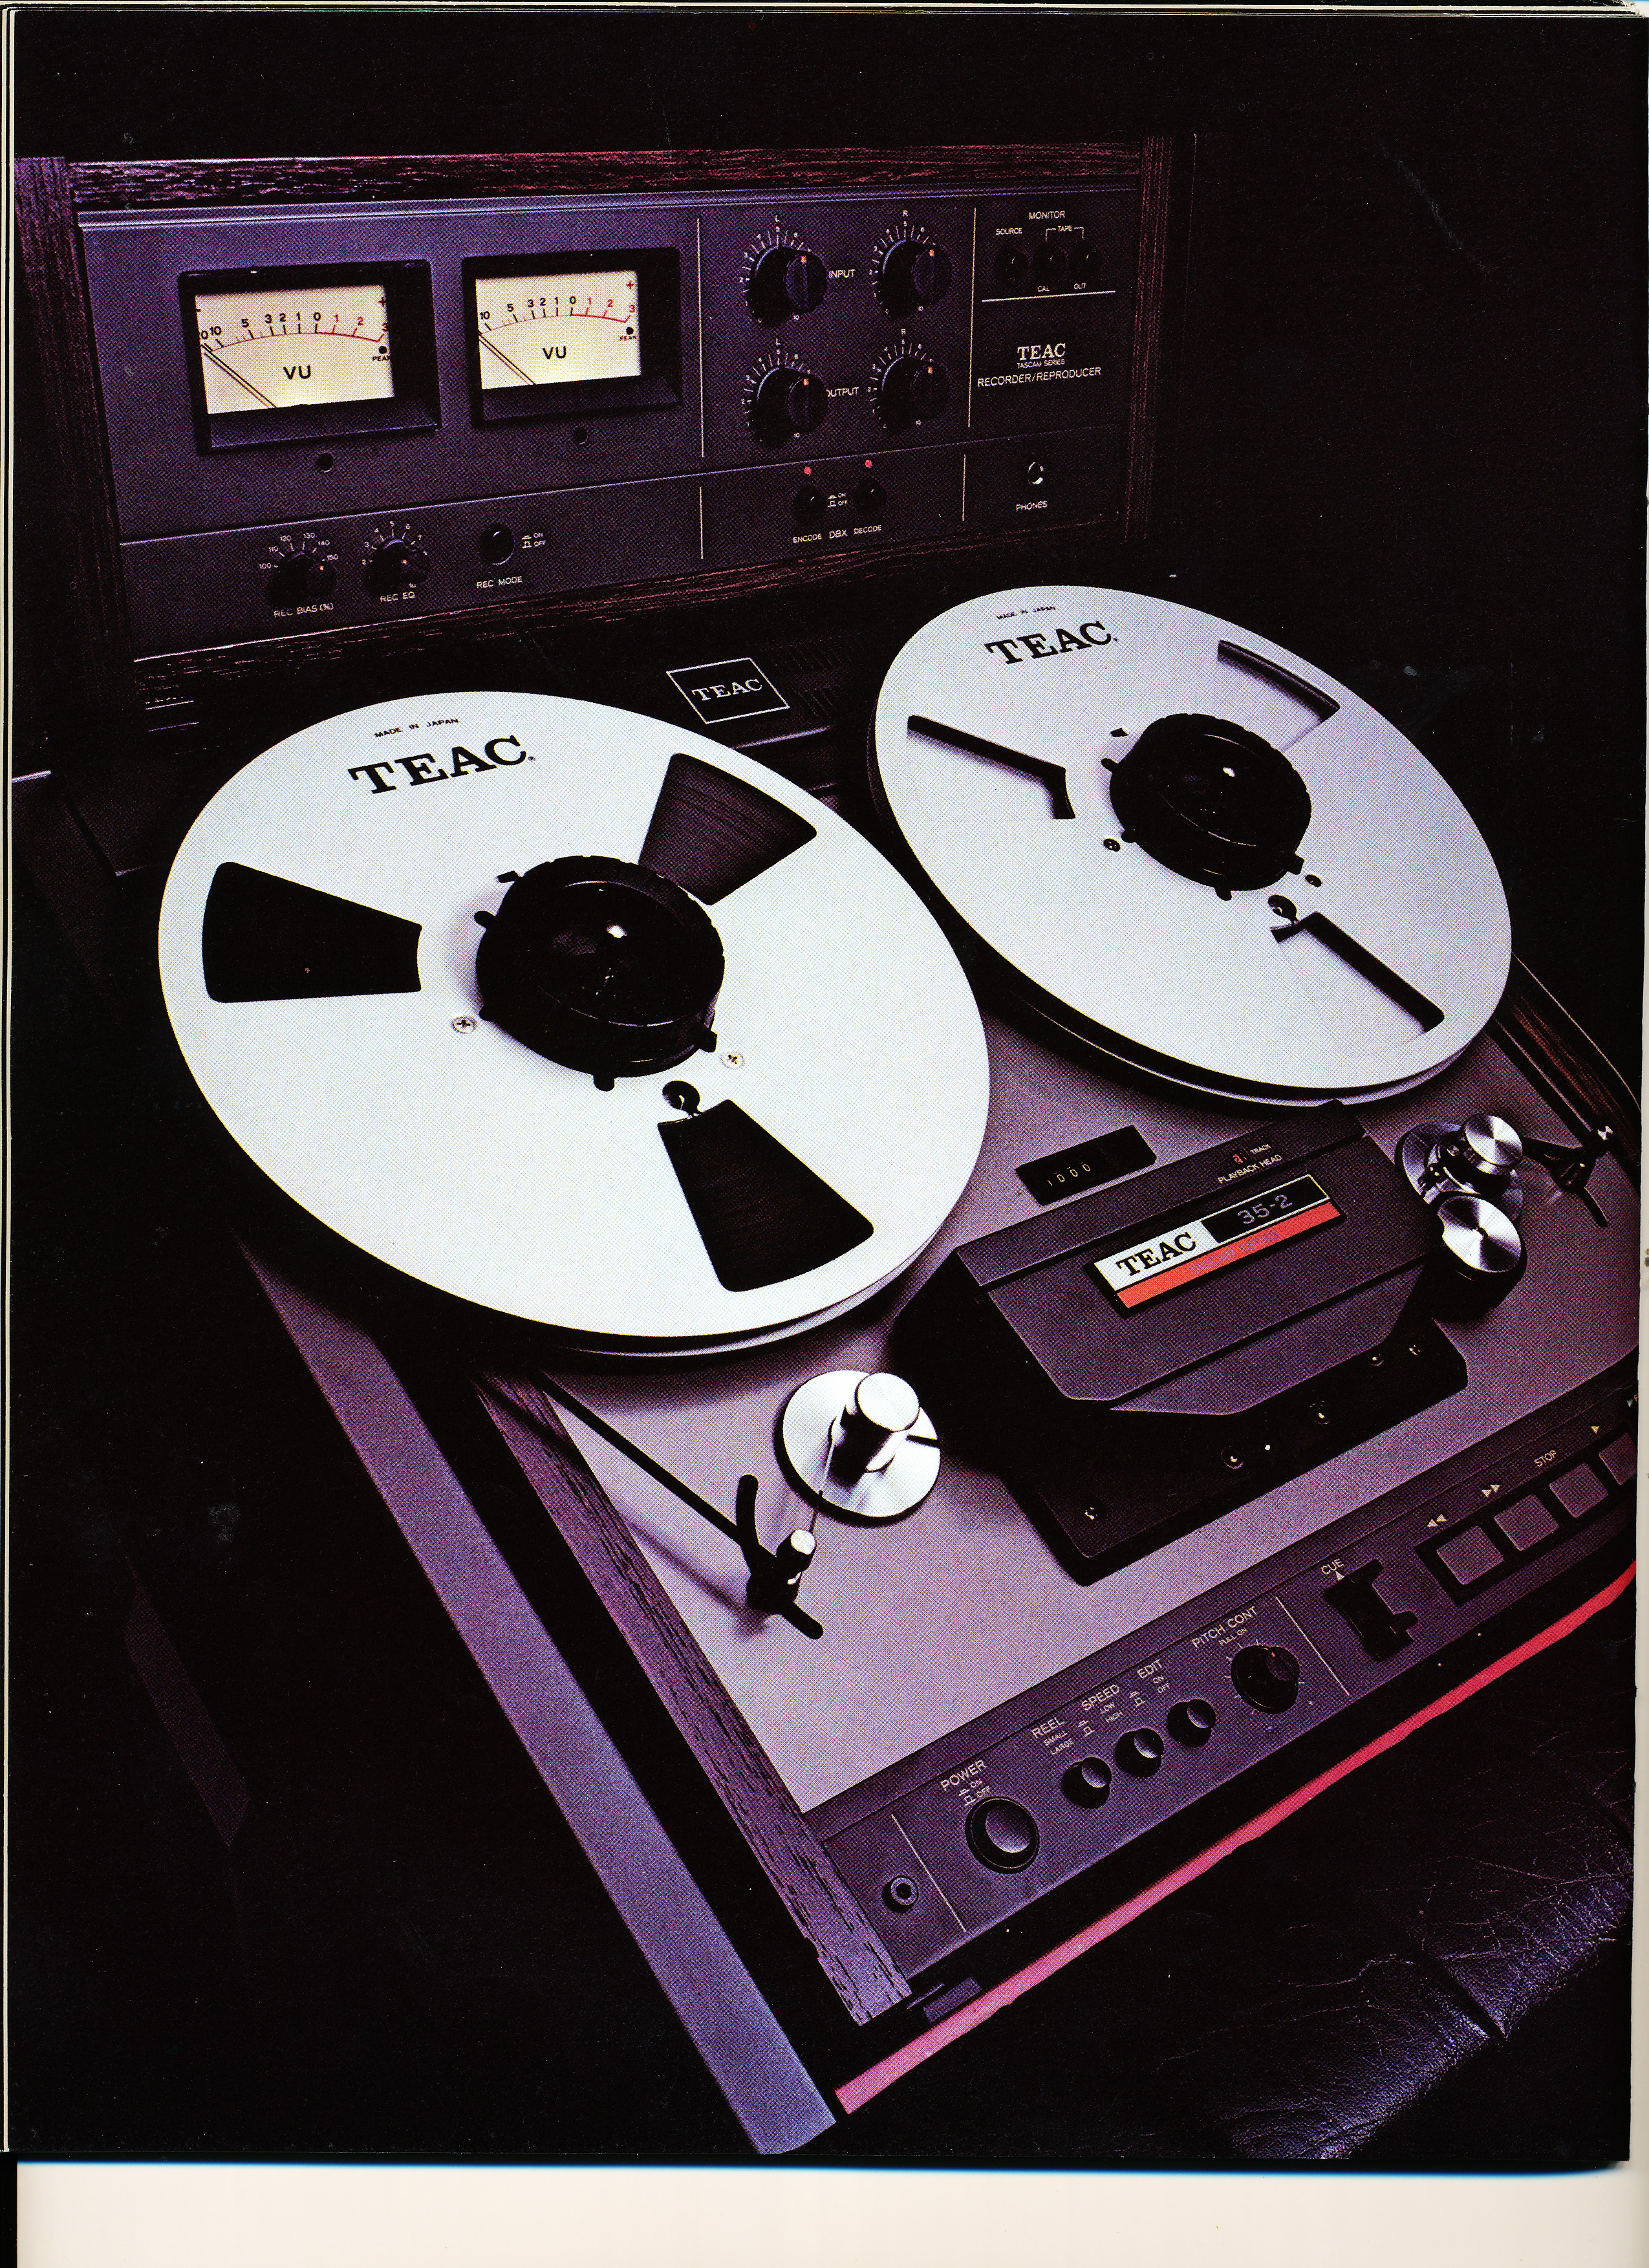 1979 ad for the Teac Tascam 35-2 2 track professional reel to reel tape recorder in the Reel2ReelTexas.com vintage reel tape recorder recording collection Museum